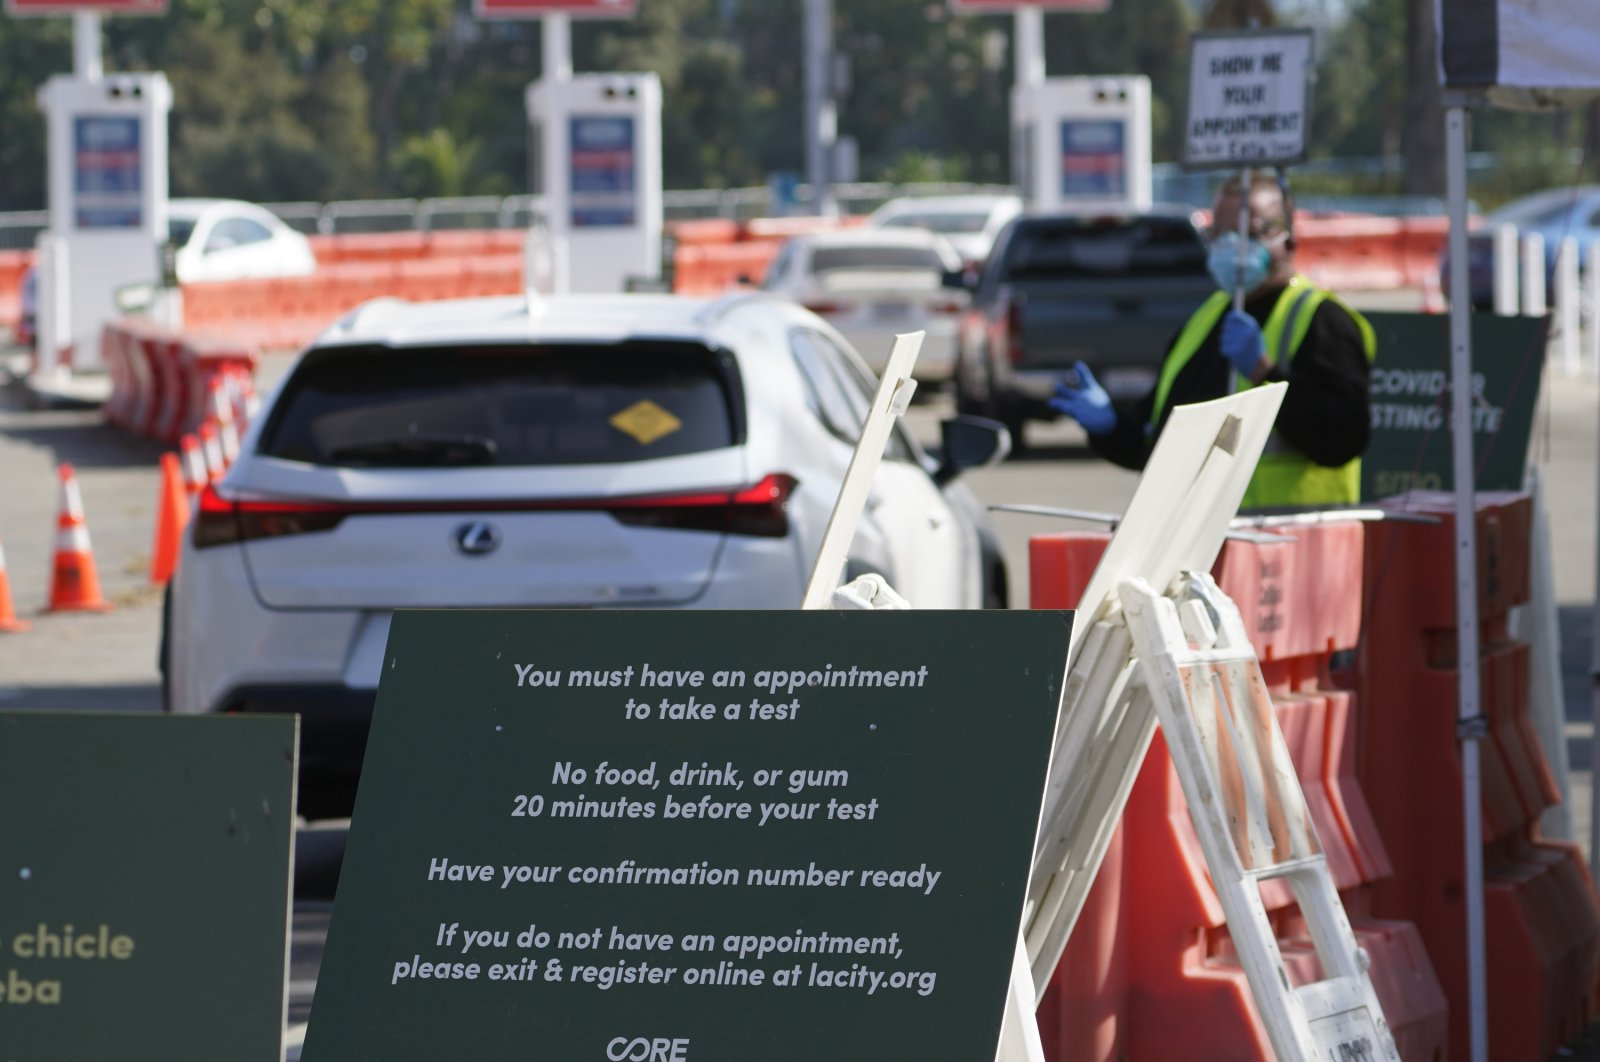 Drivers with an appointment wait in line to get a free COVID-19 self-test at Dodger Stadium, Los Angeles, California, U.S., Nov. 12, 2020. (AP Photo)